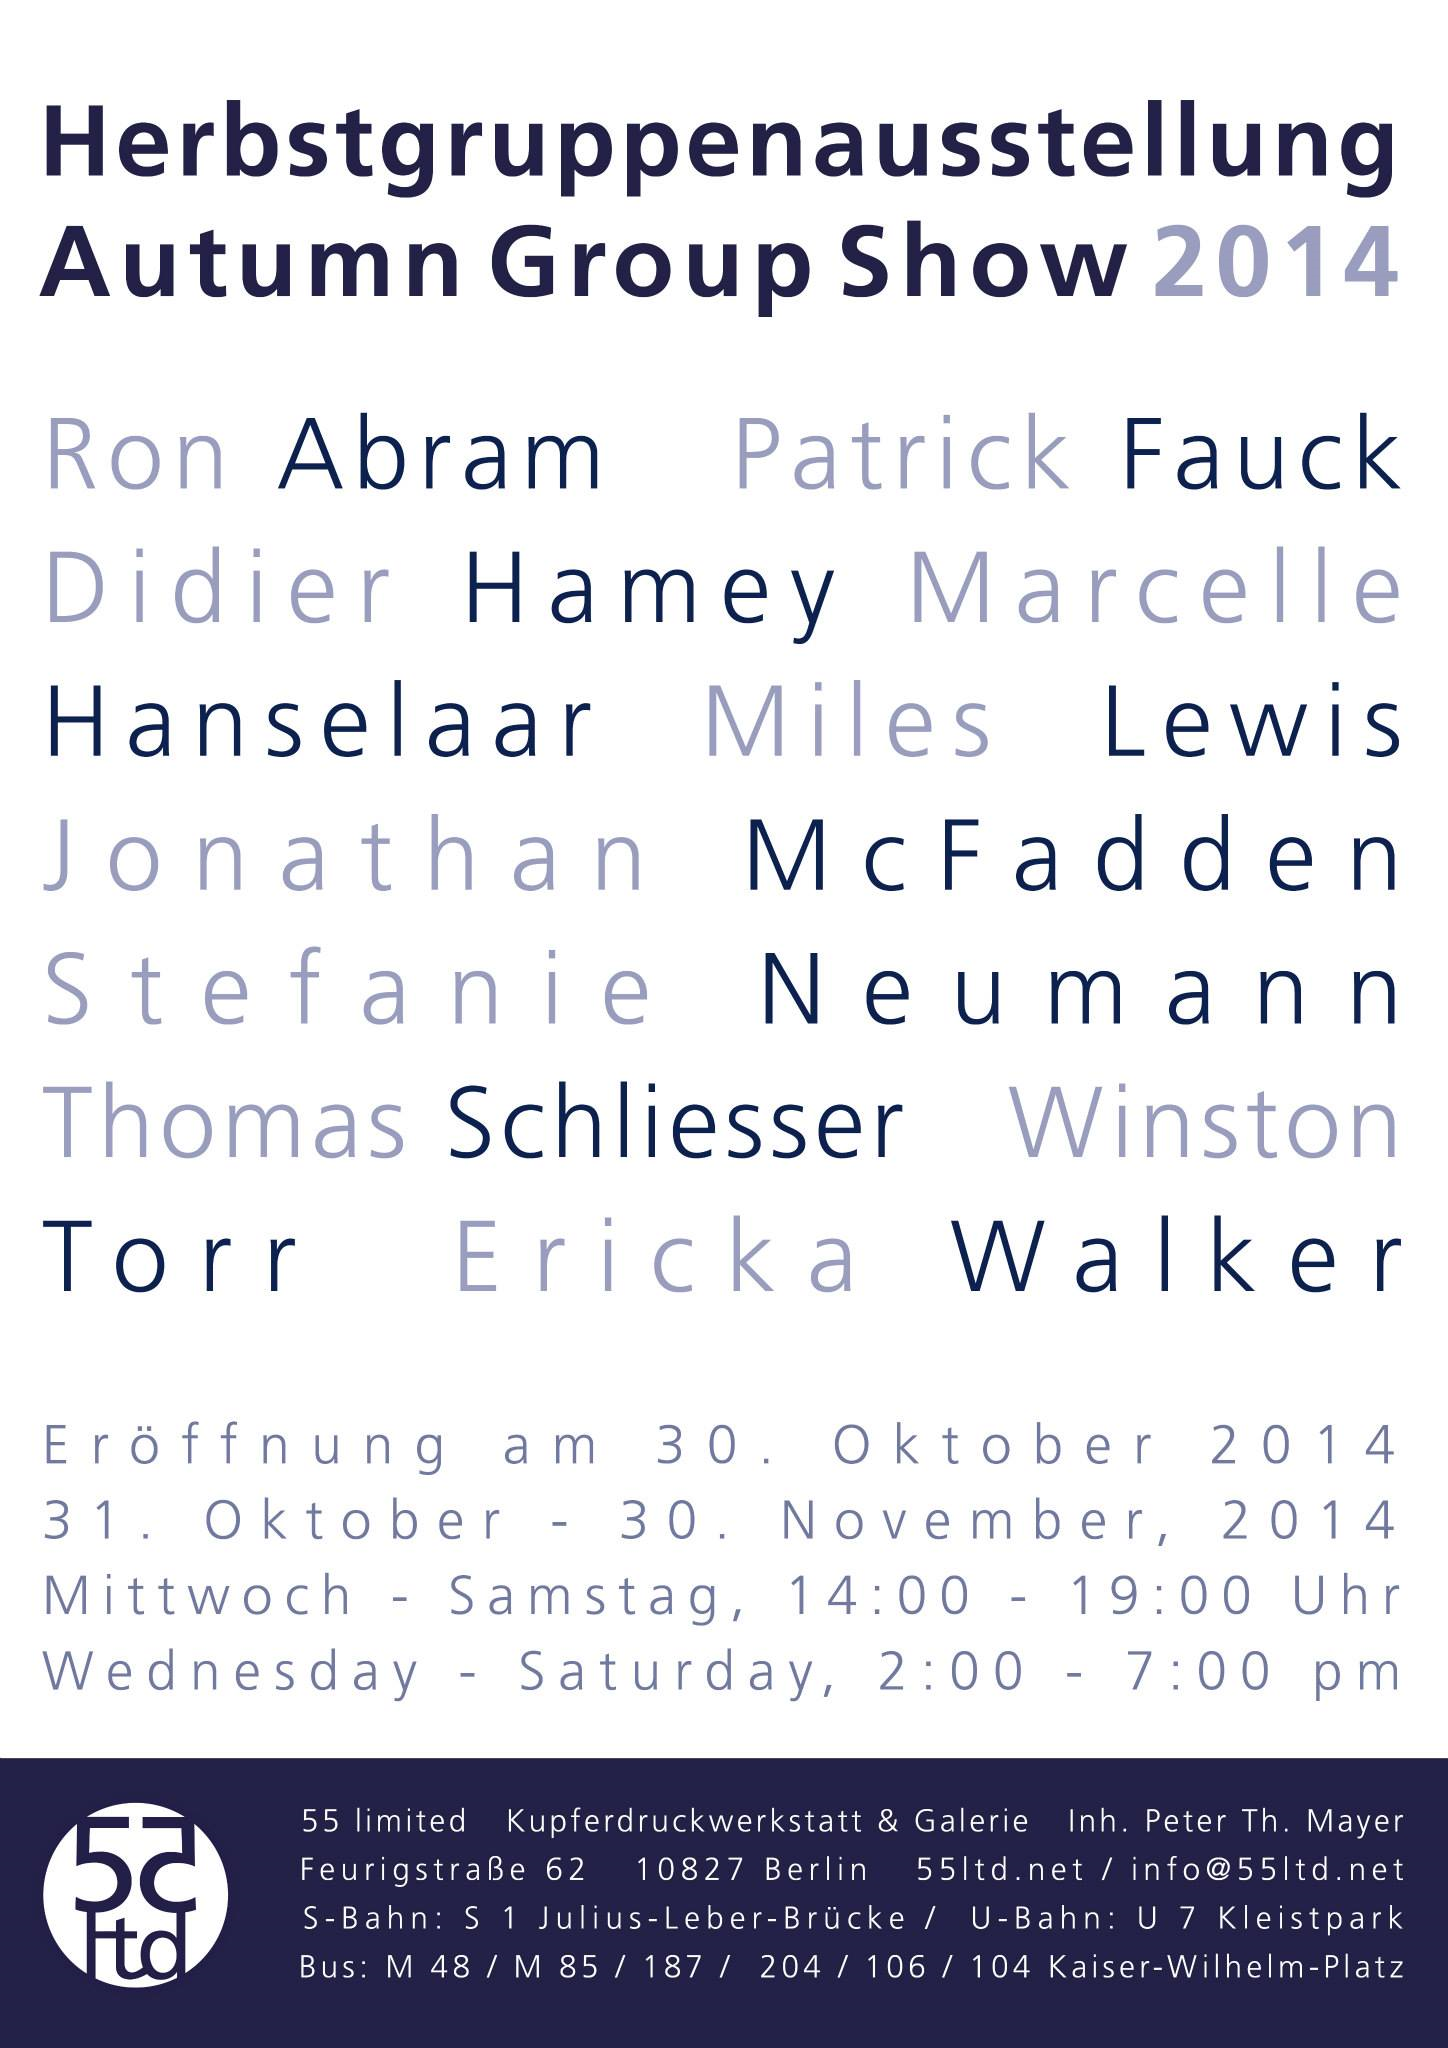 Autumn Group Exhibition in Berlin    http://55ltd.net